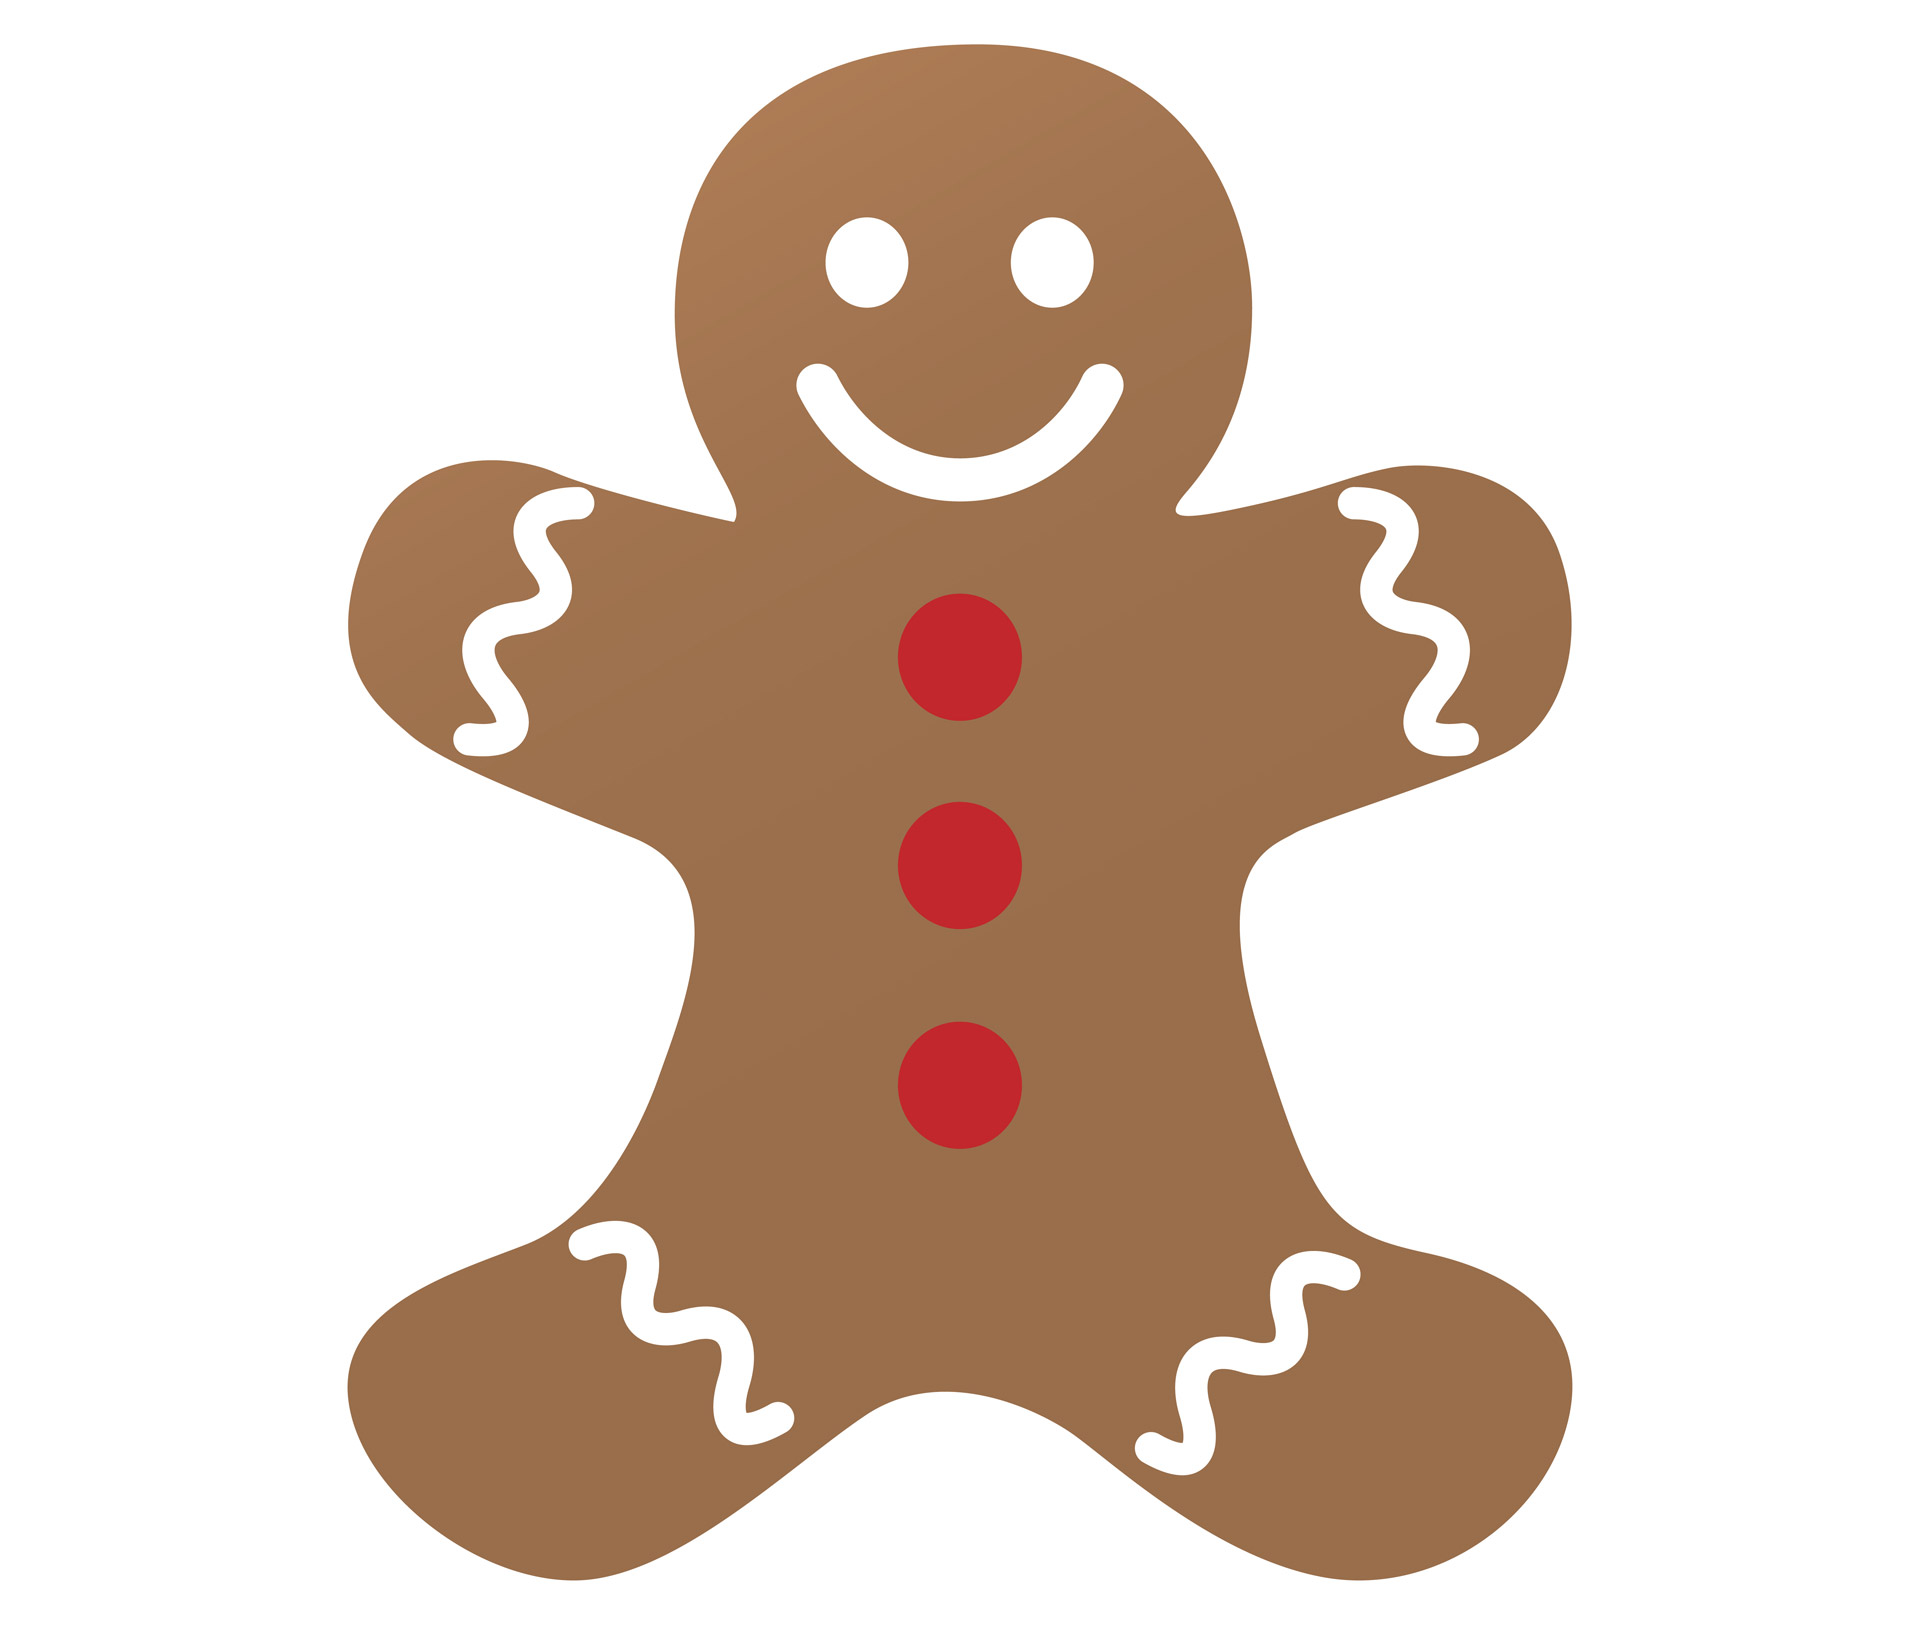 Gingerbread clipart. Man free stock photo